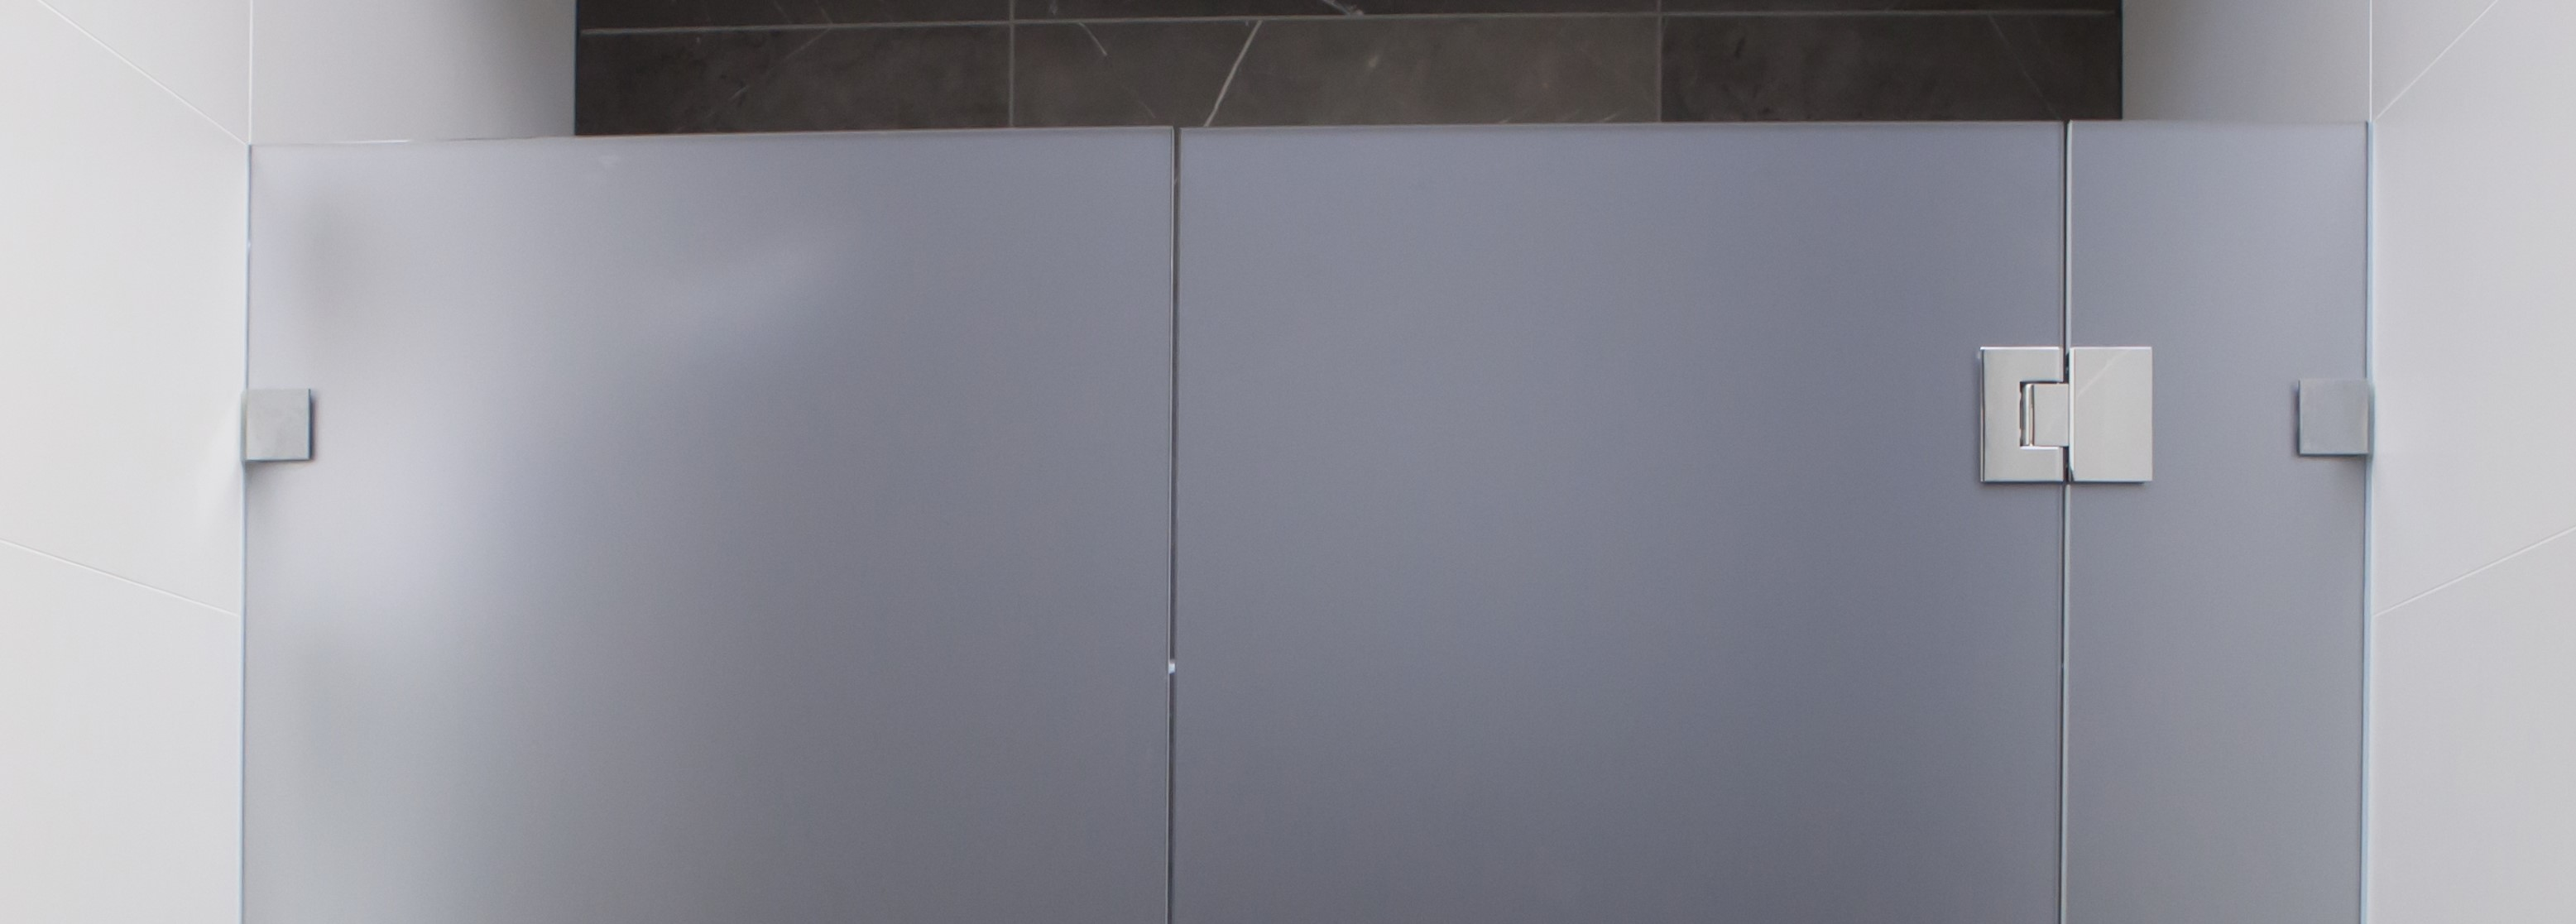 SHOULD MY SHOWER SCREEN BE FIXED WITH WALL BRACKETS OR SILICONED INTO WALL CHANNEL?